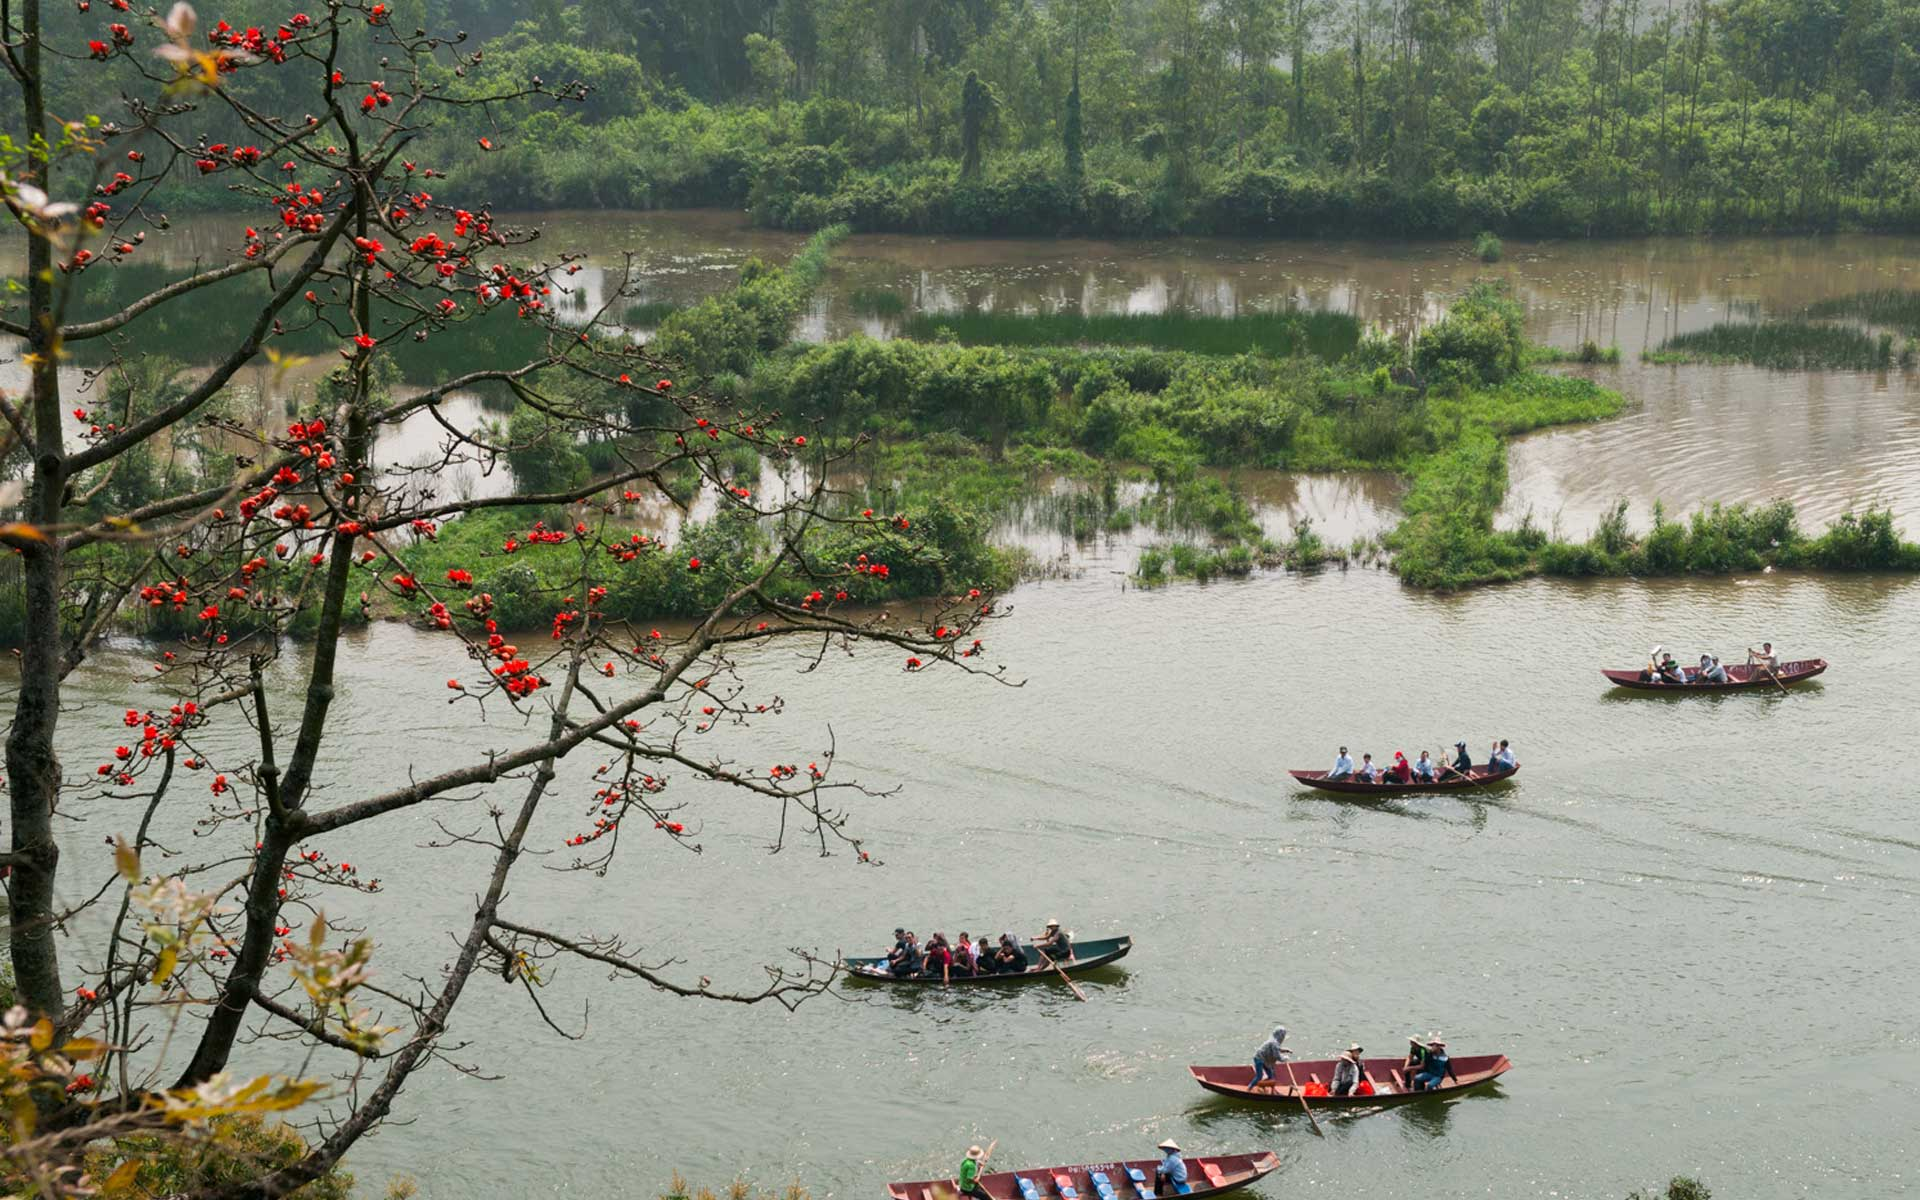 Tourists take boat trip along Yen Stream during red silk cotton flower blooming season.